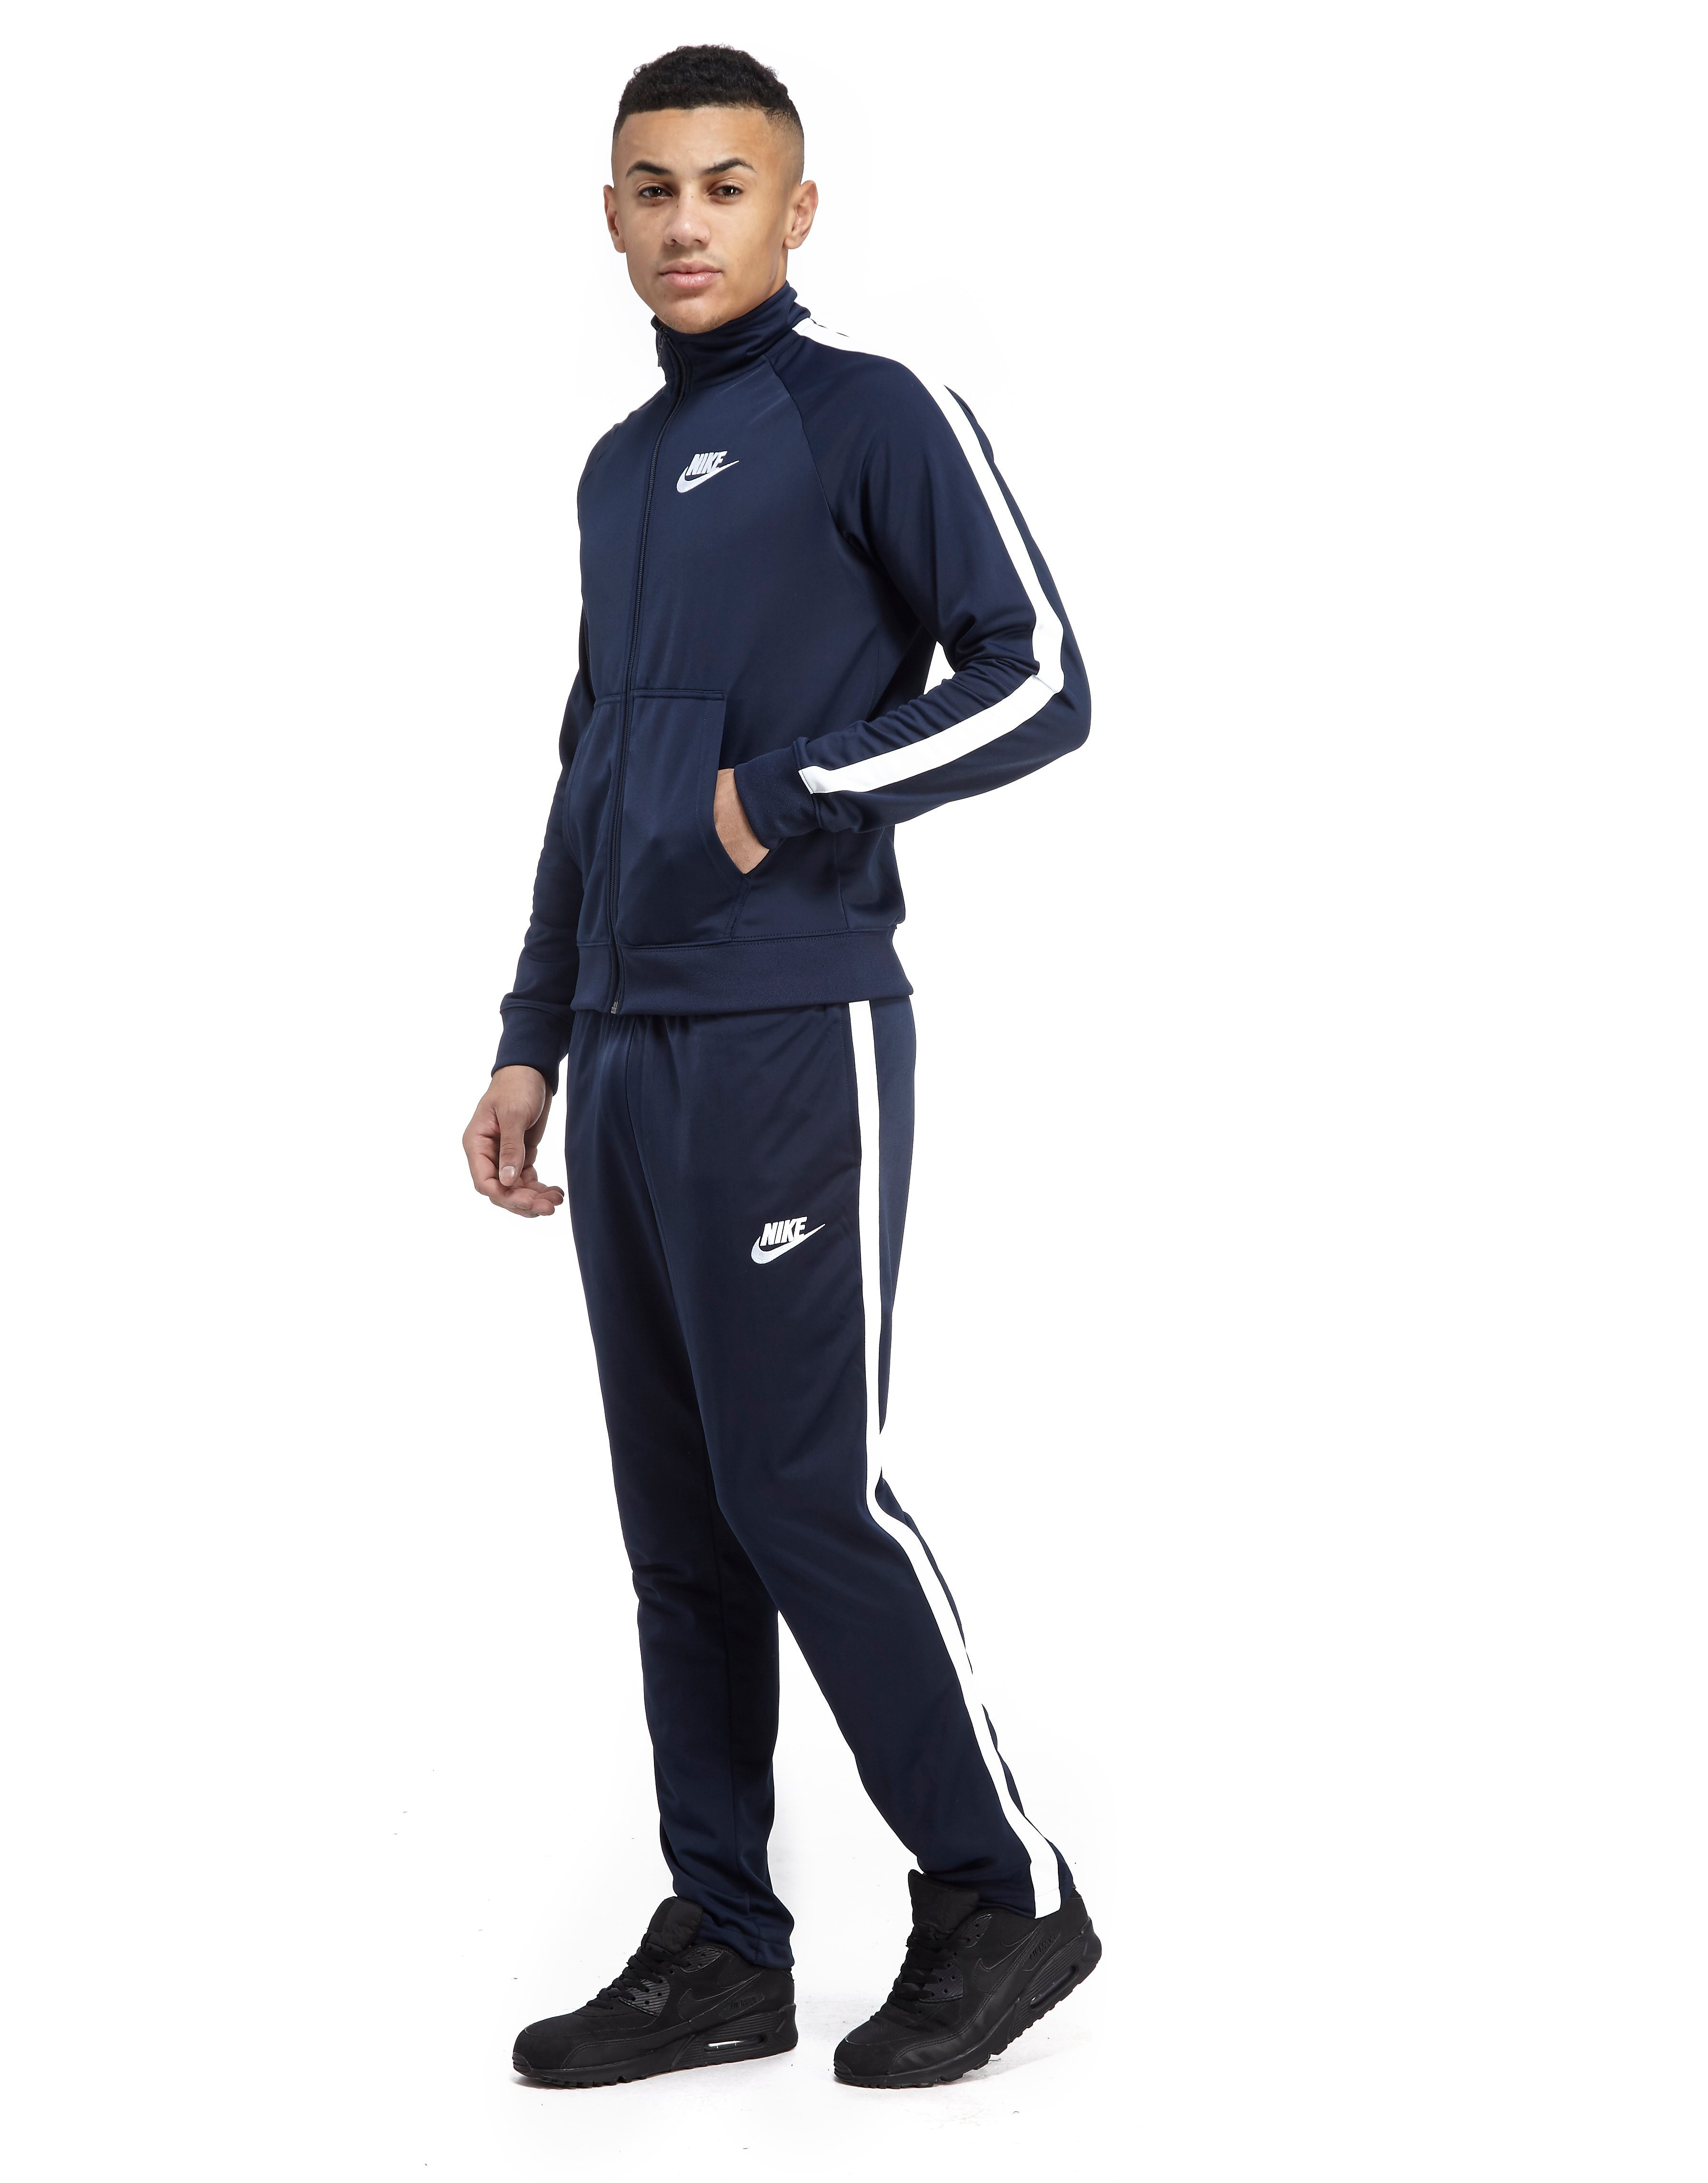 Nike Season Trainingsanzug aus Polyester